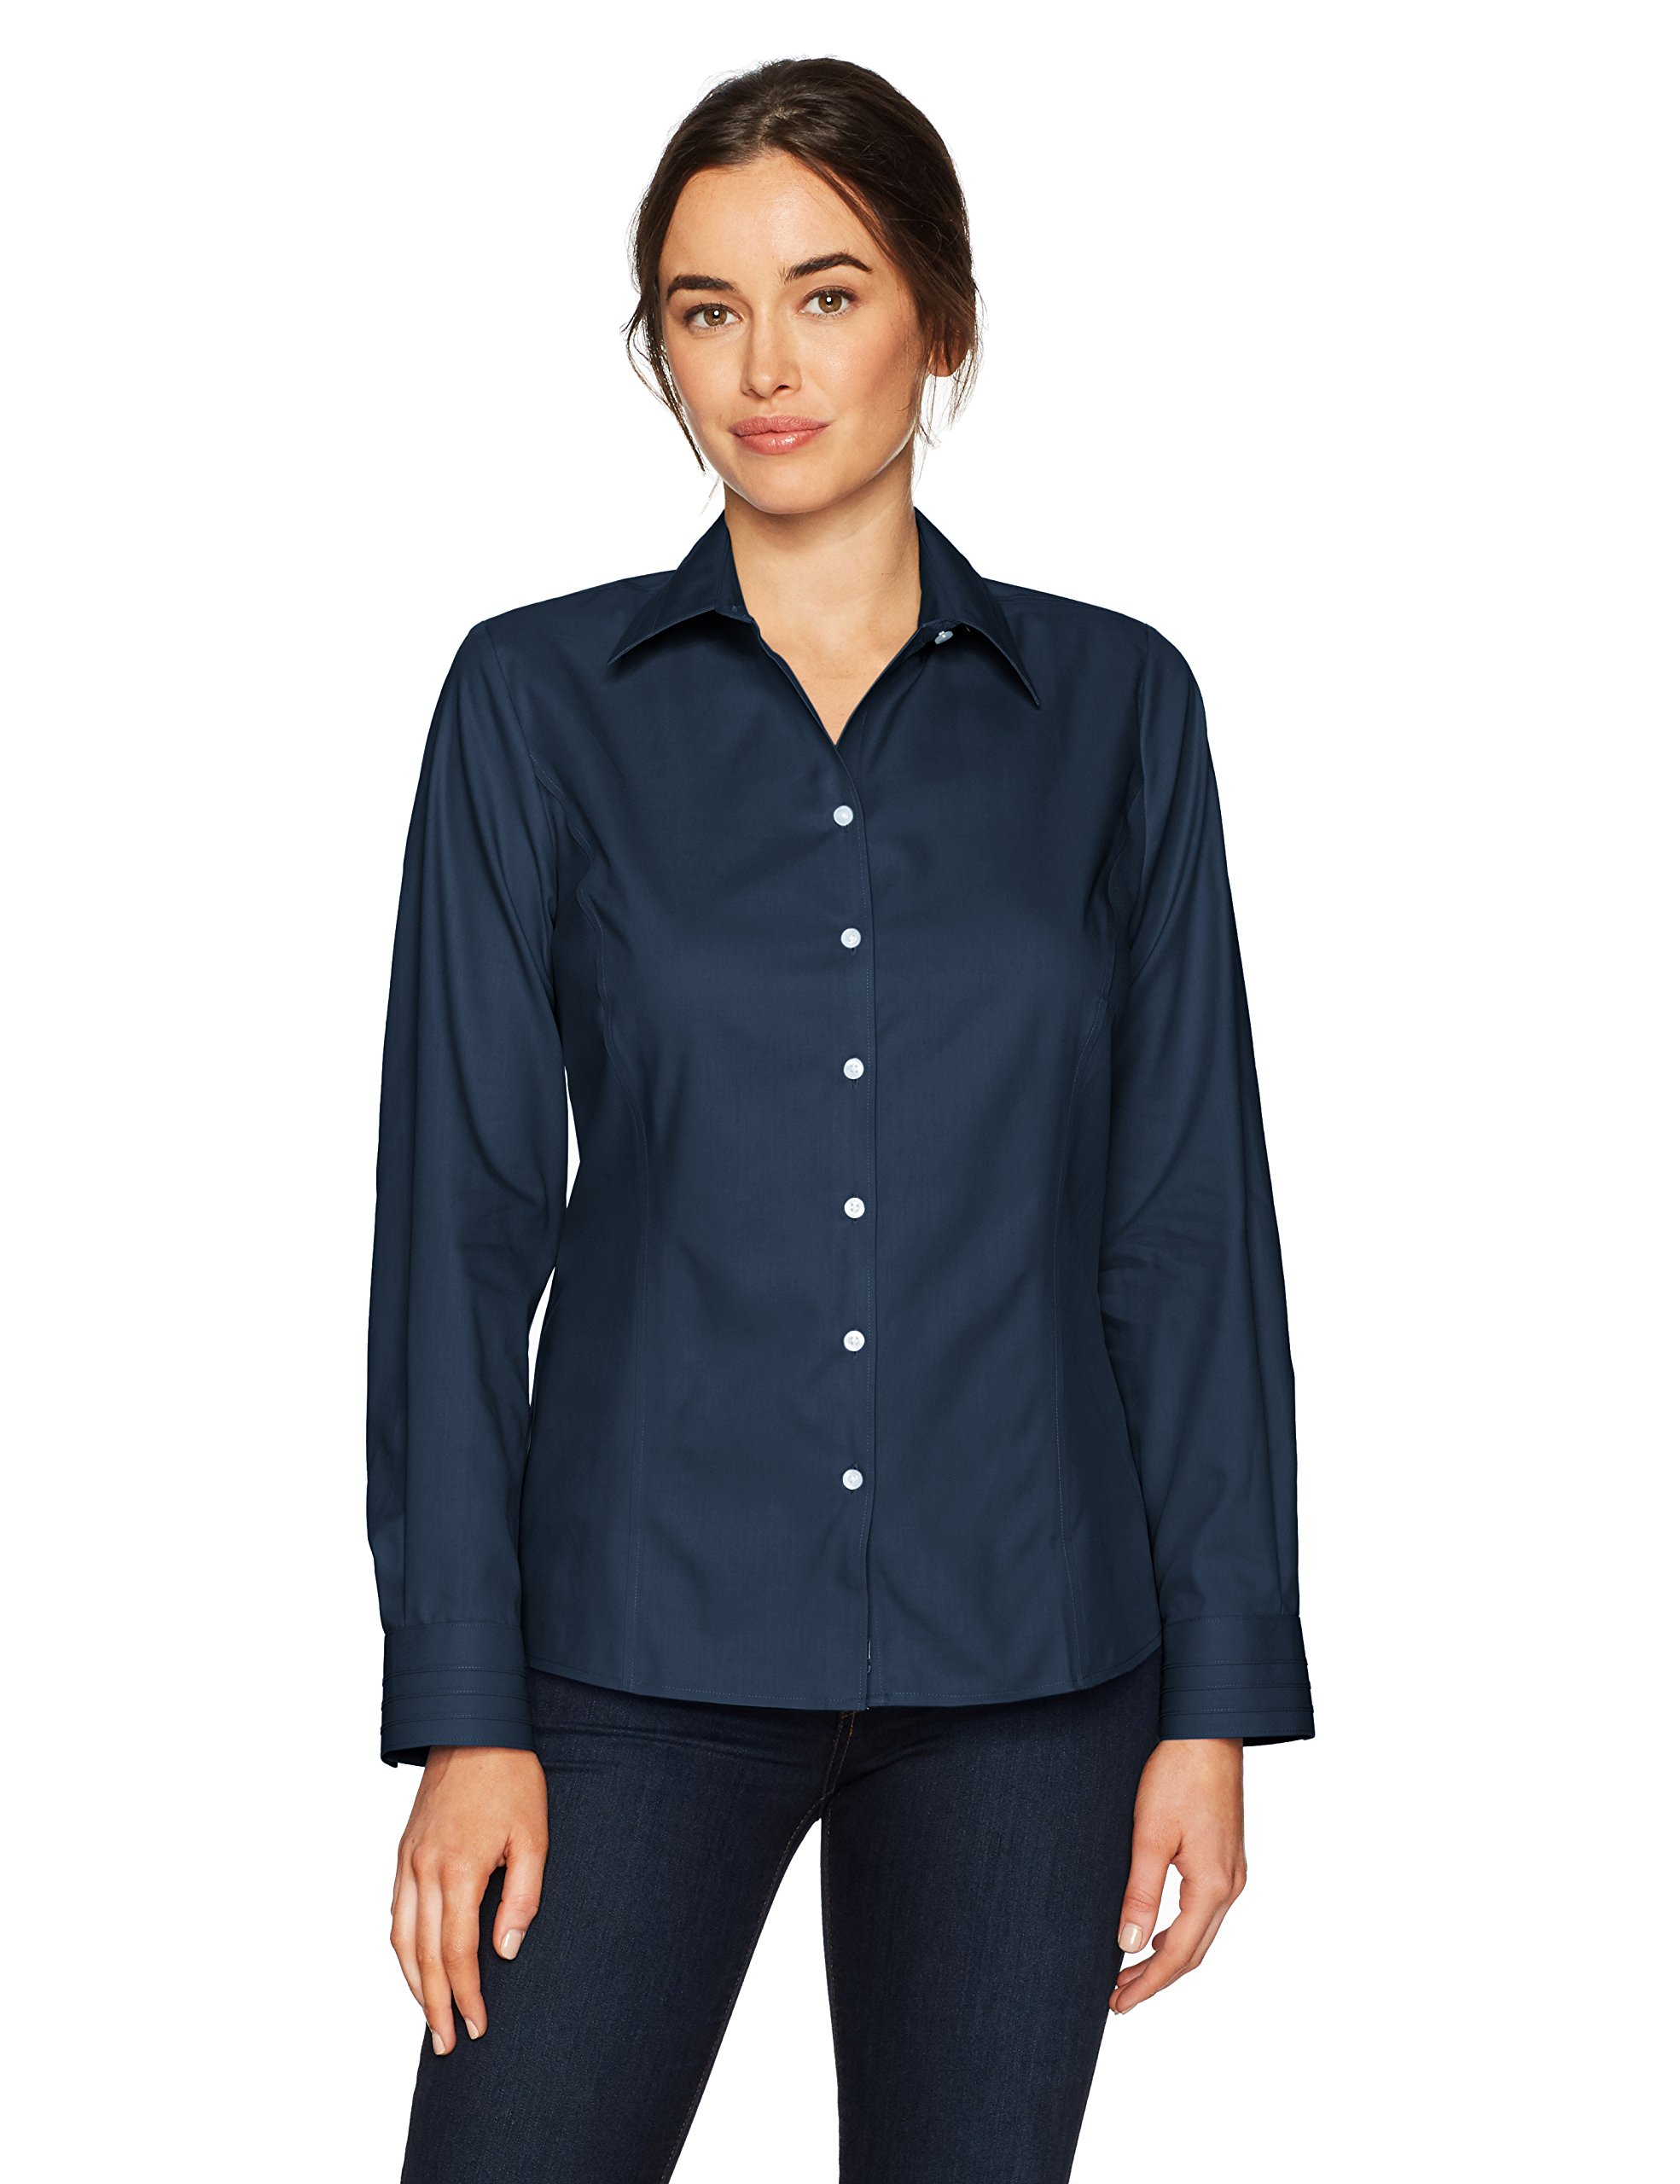 Cutter & Buck Women's Epic Easy Care Long Sleeve Fine Twill Collared Shirt, Navy Blue, XS